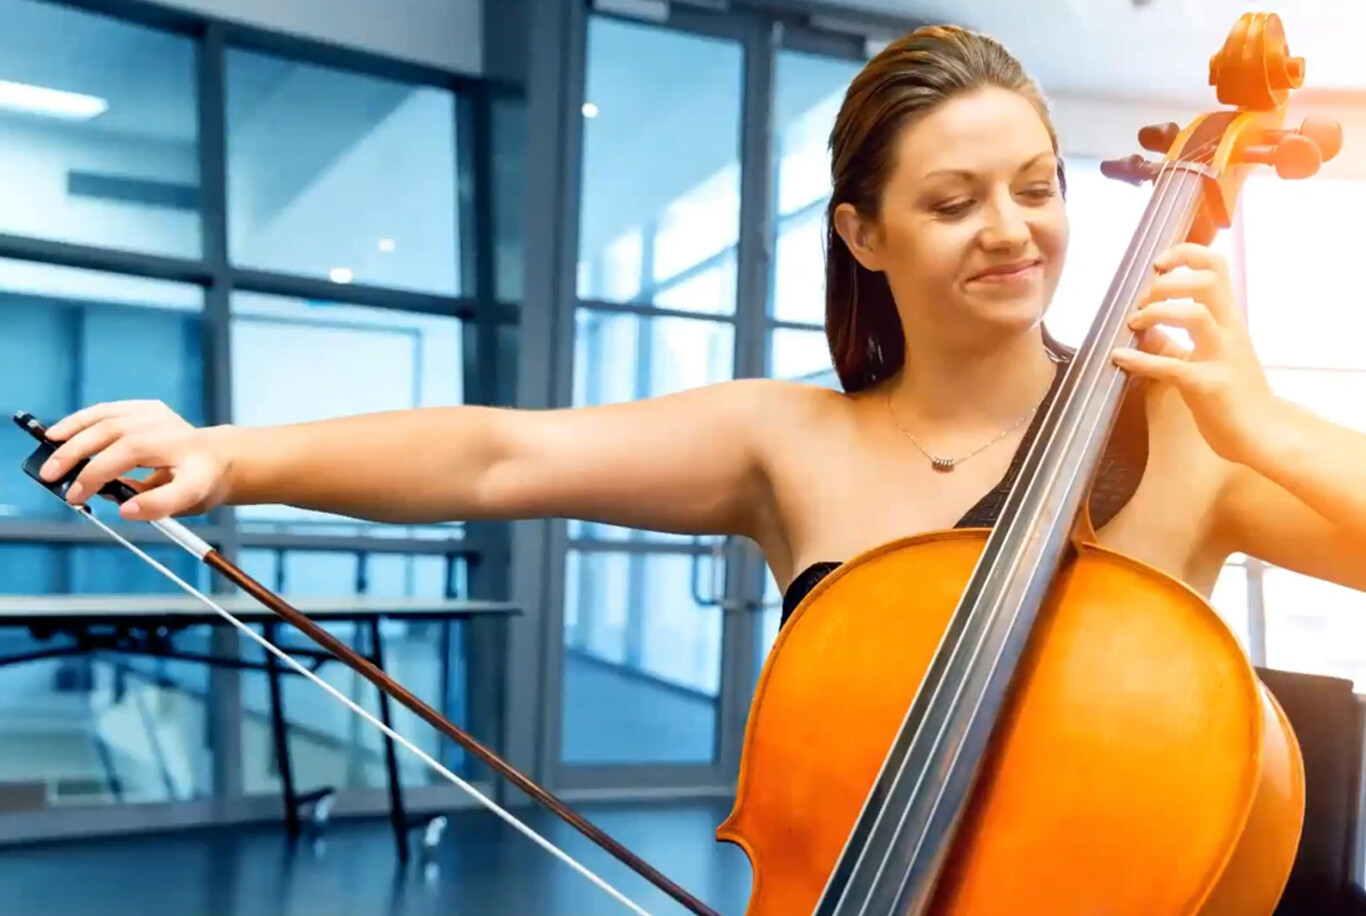 How to Choose a Professional Cello Trainer?